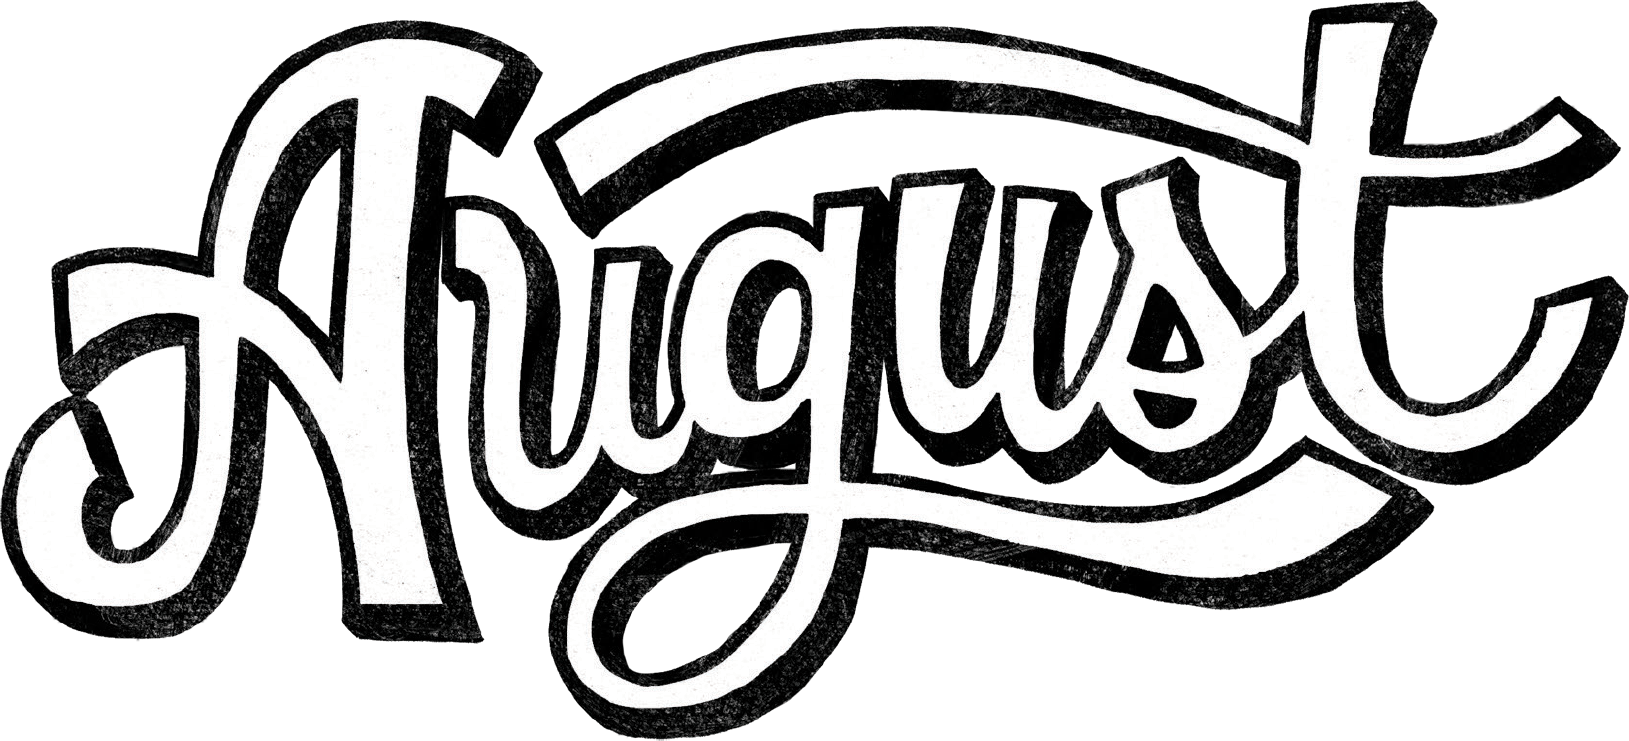 August clipart 14 august. Png transparent images pngio